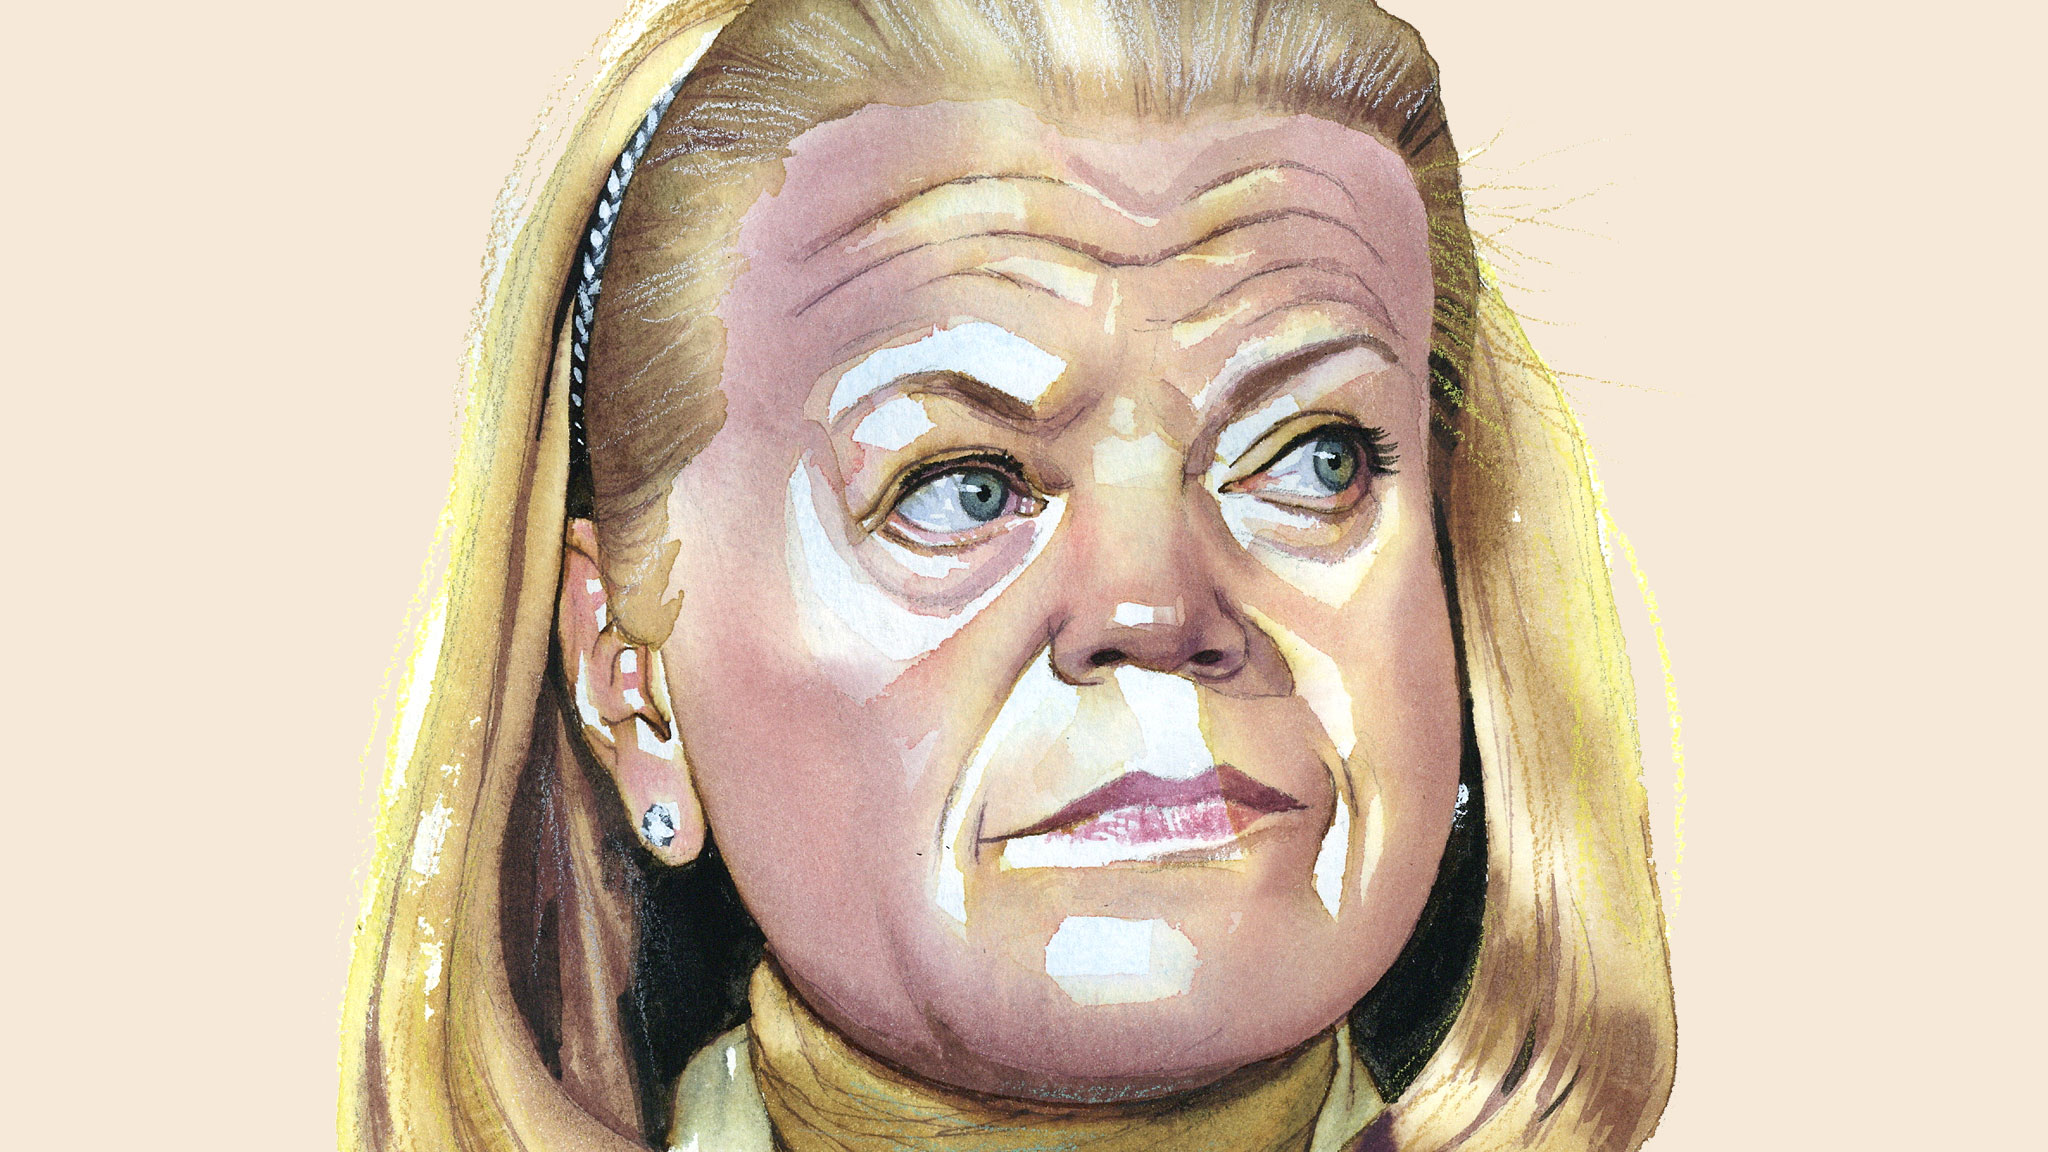 virginia rometty bio